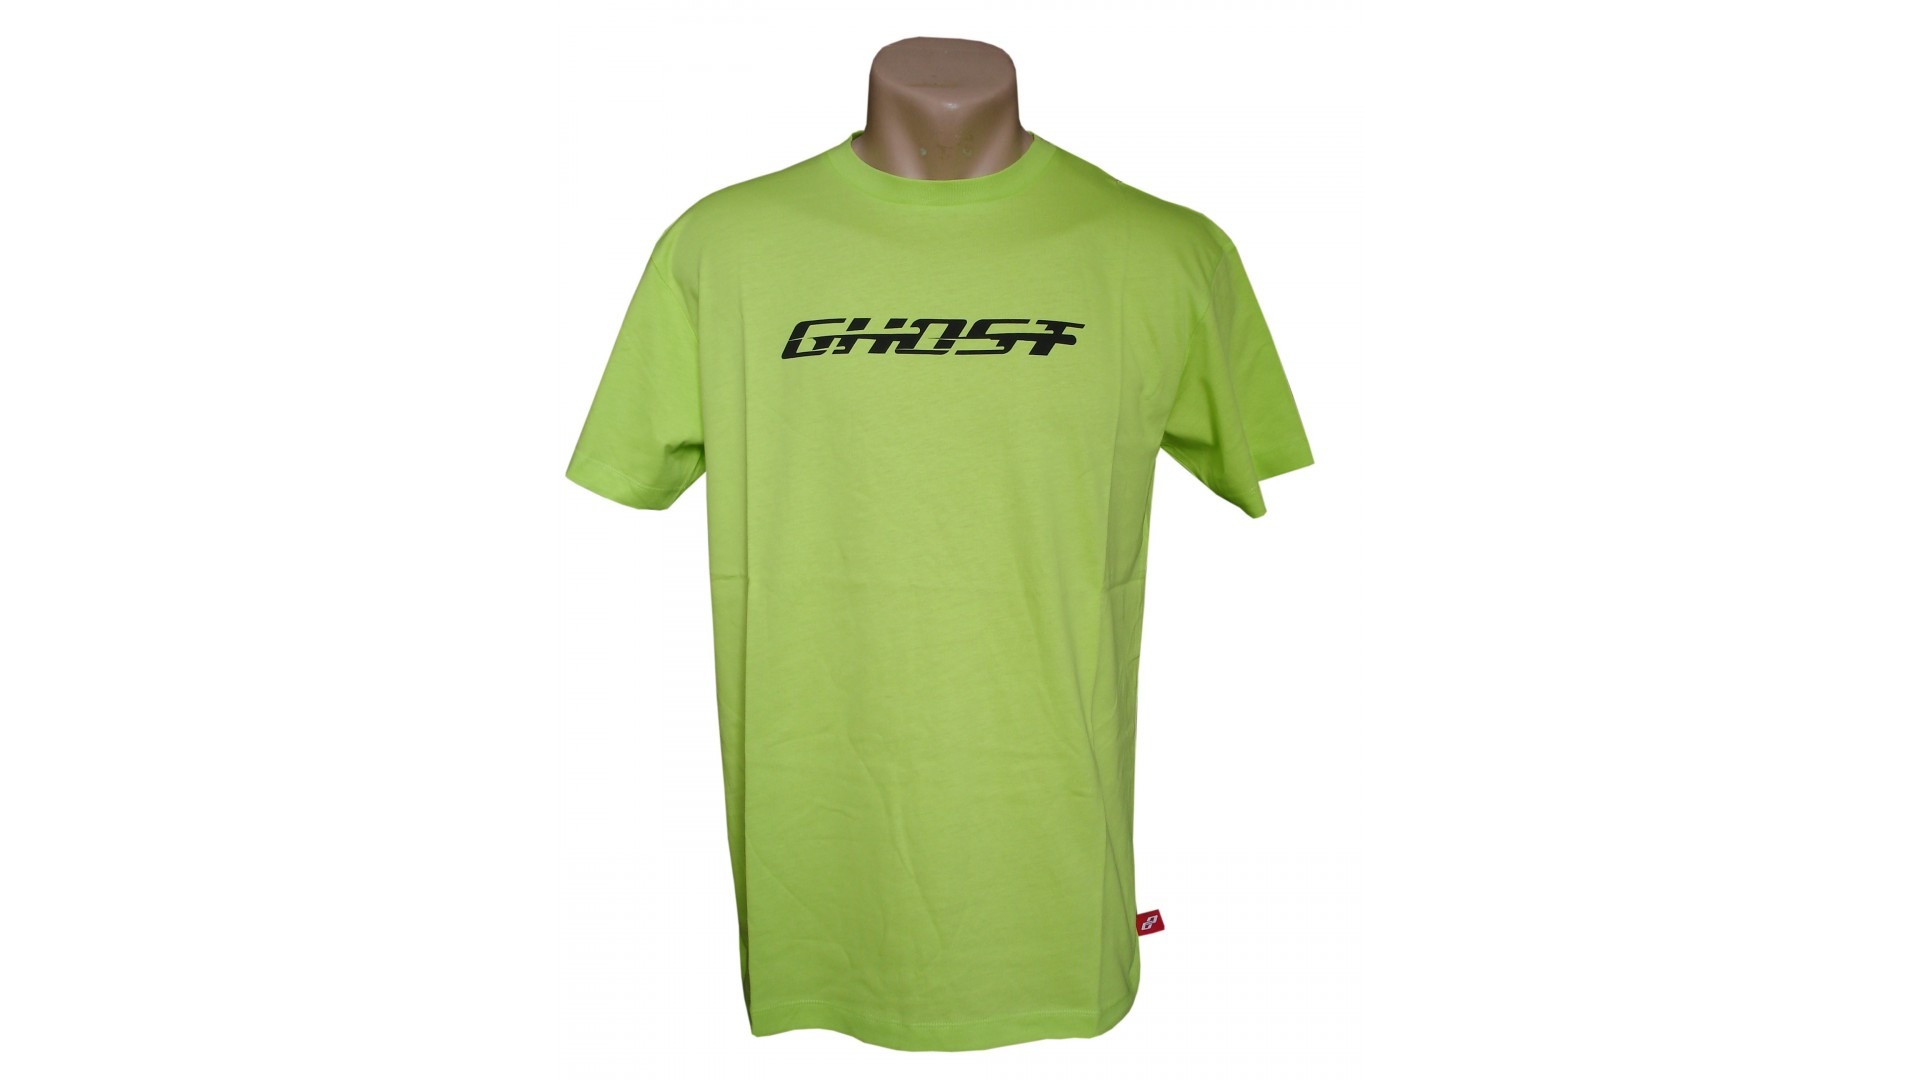 Футболка Ghost T-shirt lime год 2014 вид спереди